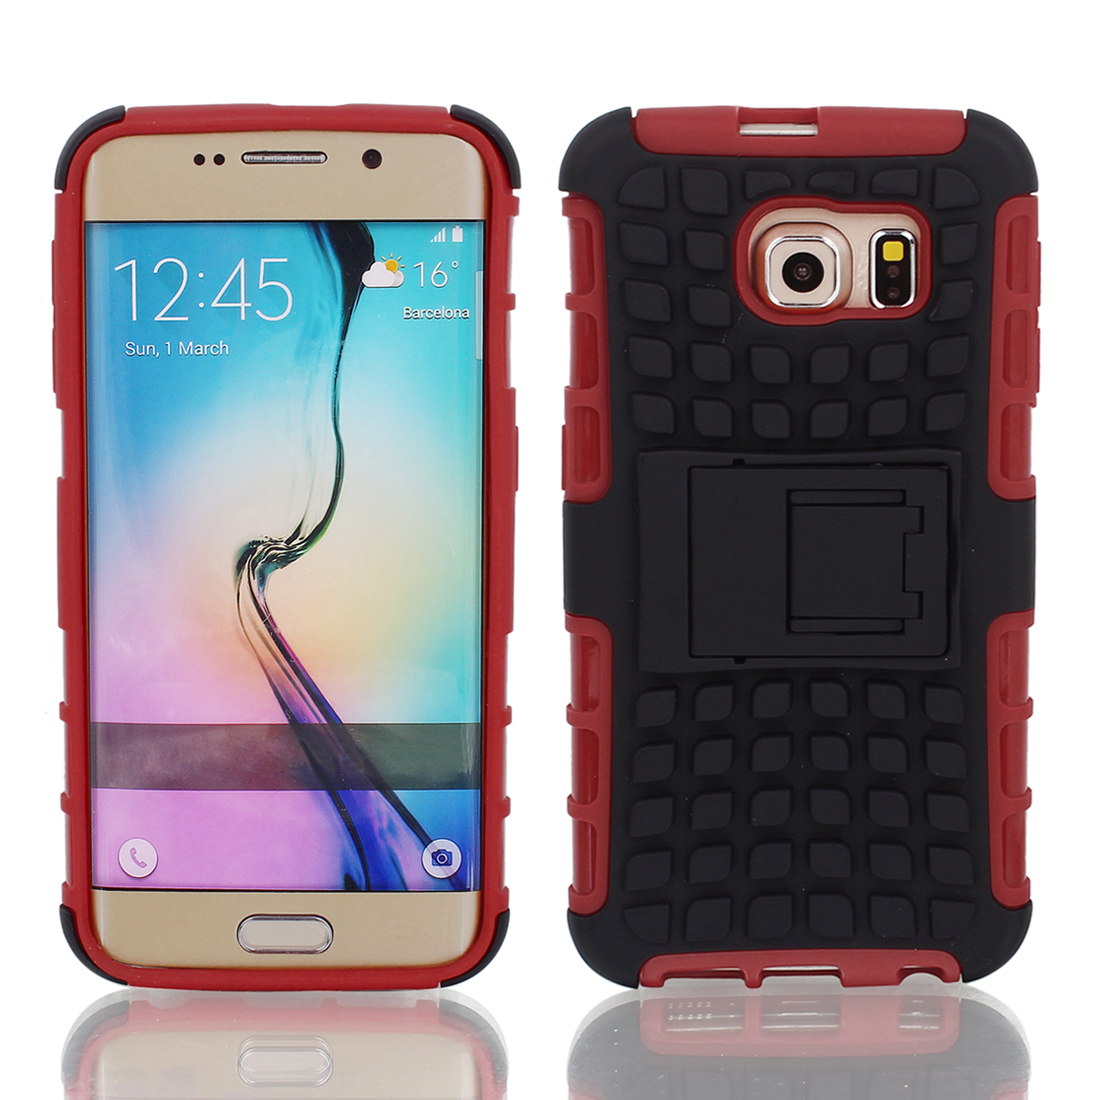 Shockproof Tough Rugged Hard Stand Case Cover Red Black for G9200 Galaxy S6